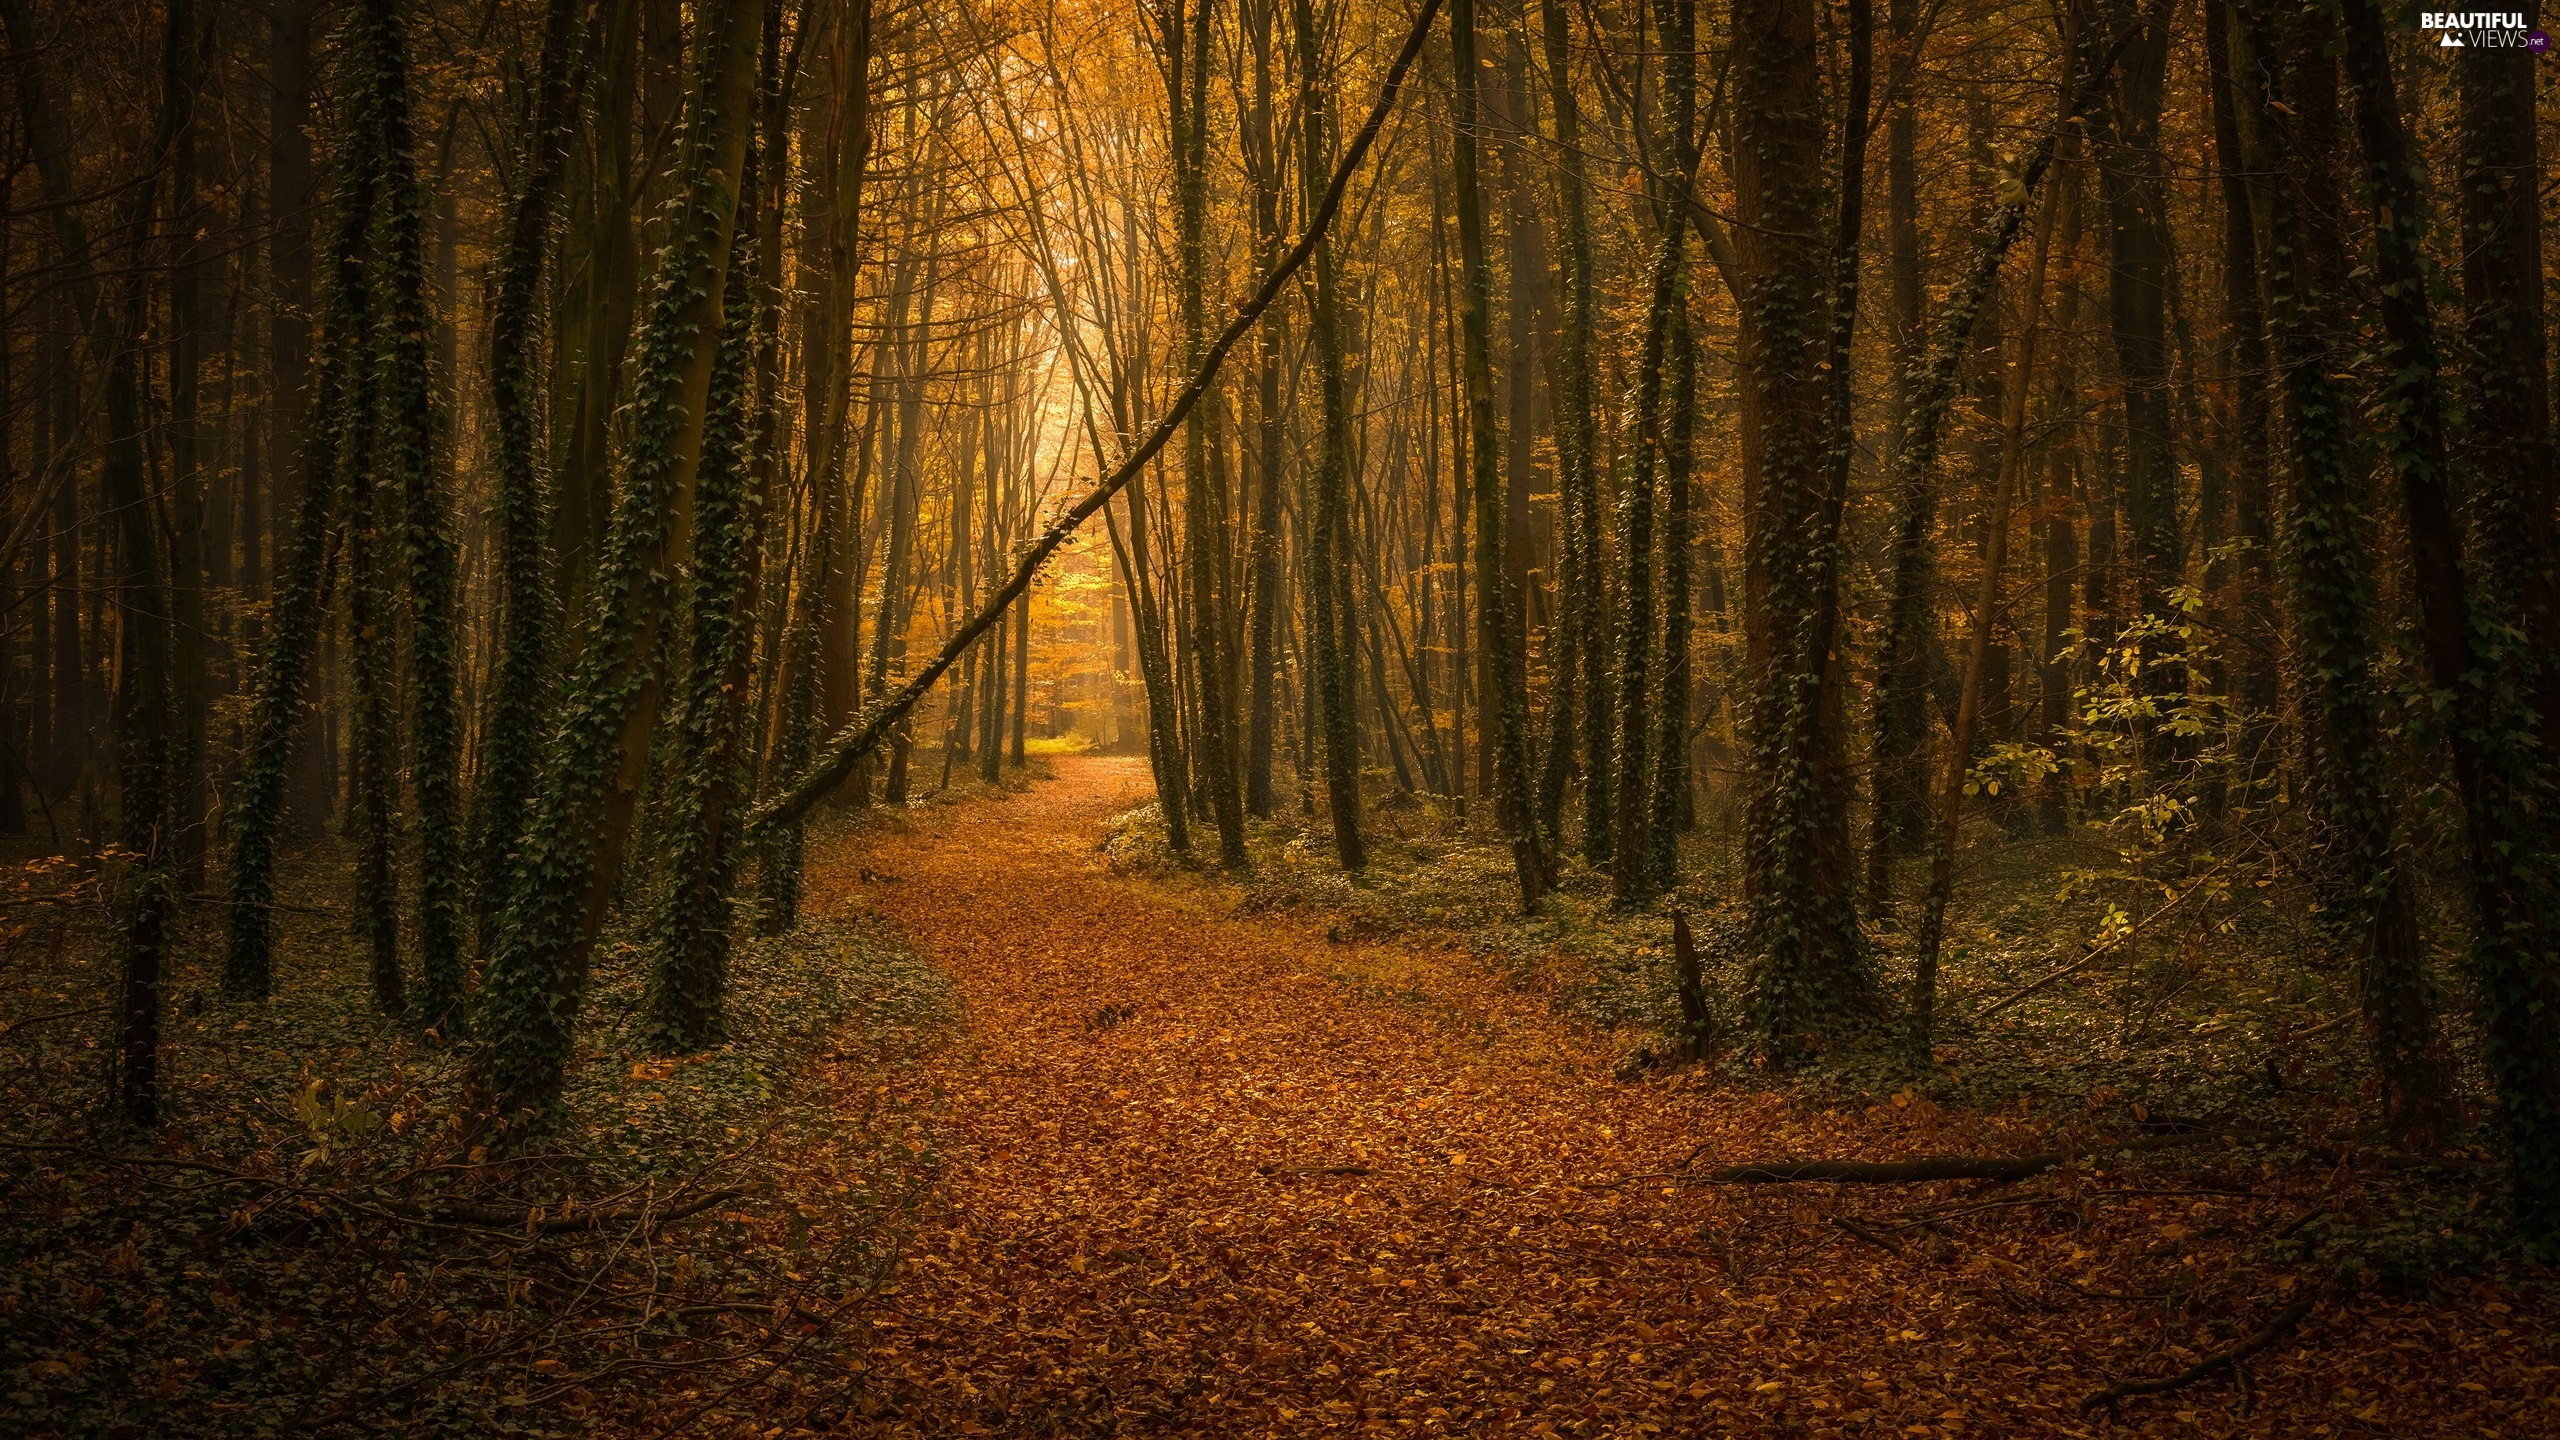 forest, Path, Leaf, autumn